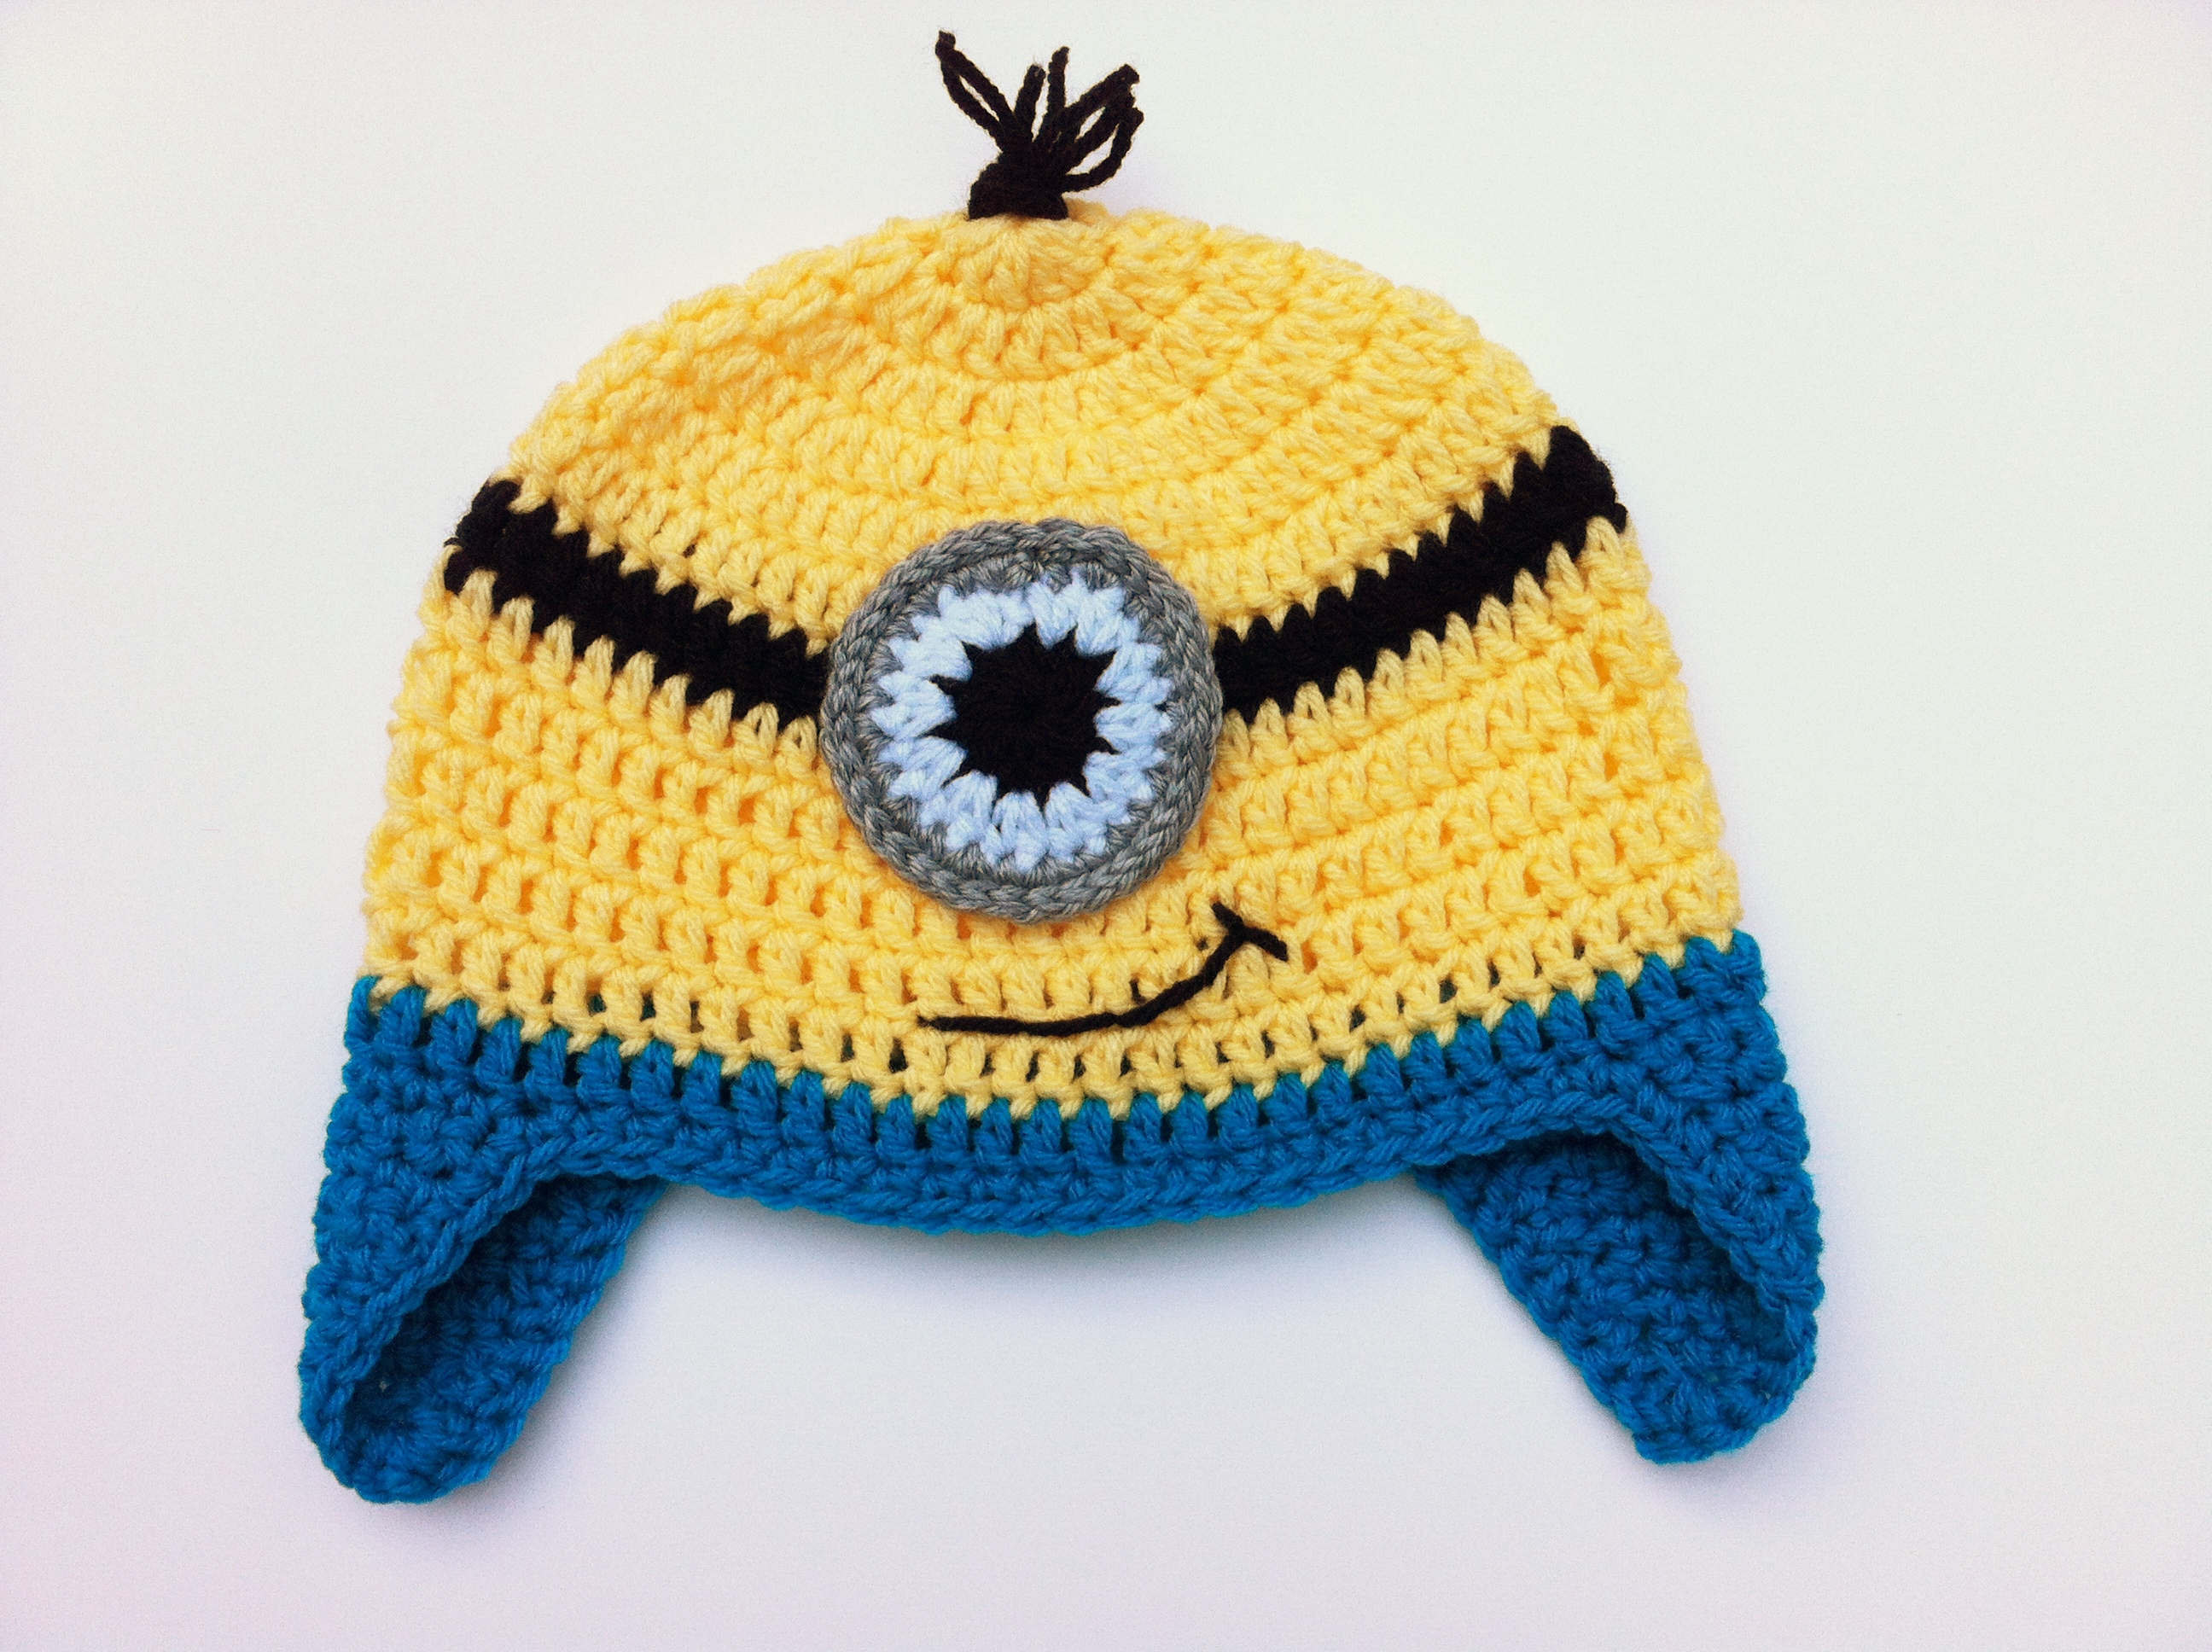 Knitting Patterns For Minion Hats Season For Minions